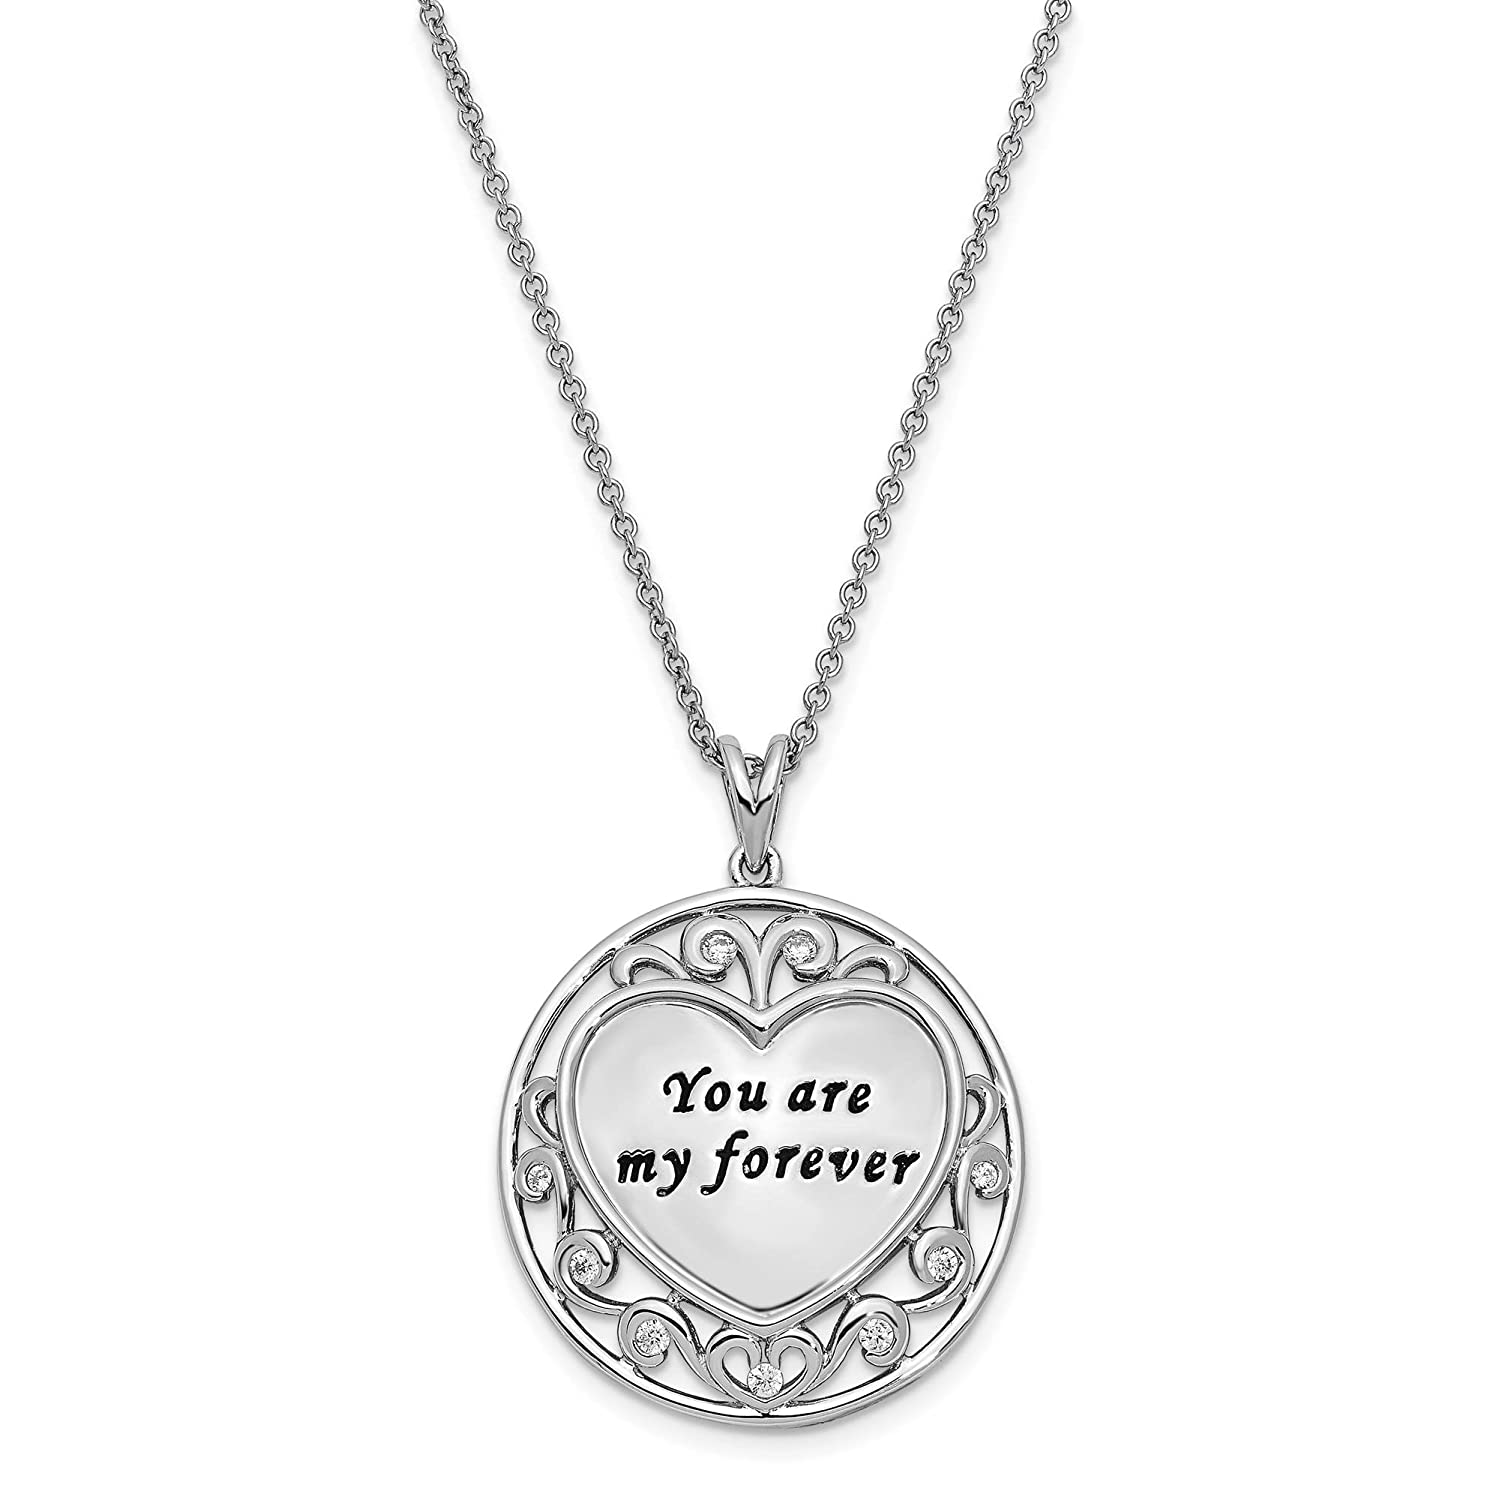 925 Sterling Silver CZ You Are My Forever Circle Pendant Necklace 18 by Sentimental Expressions